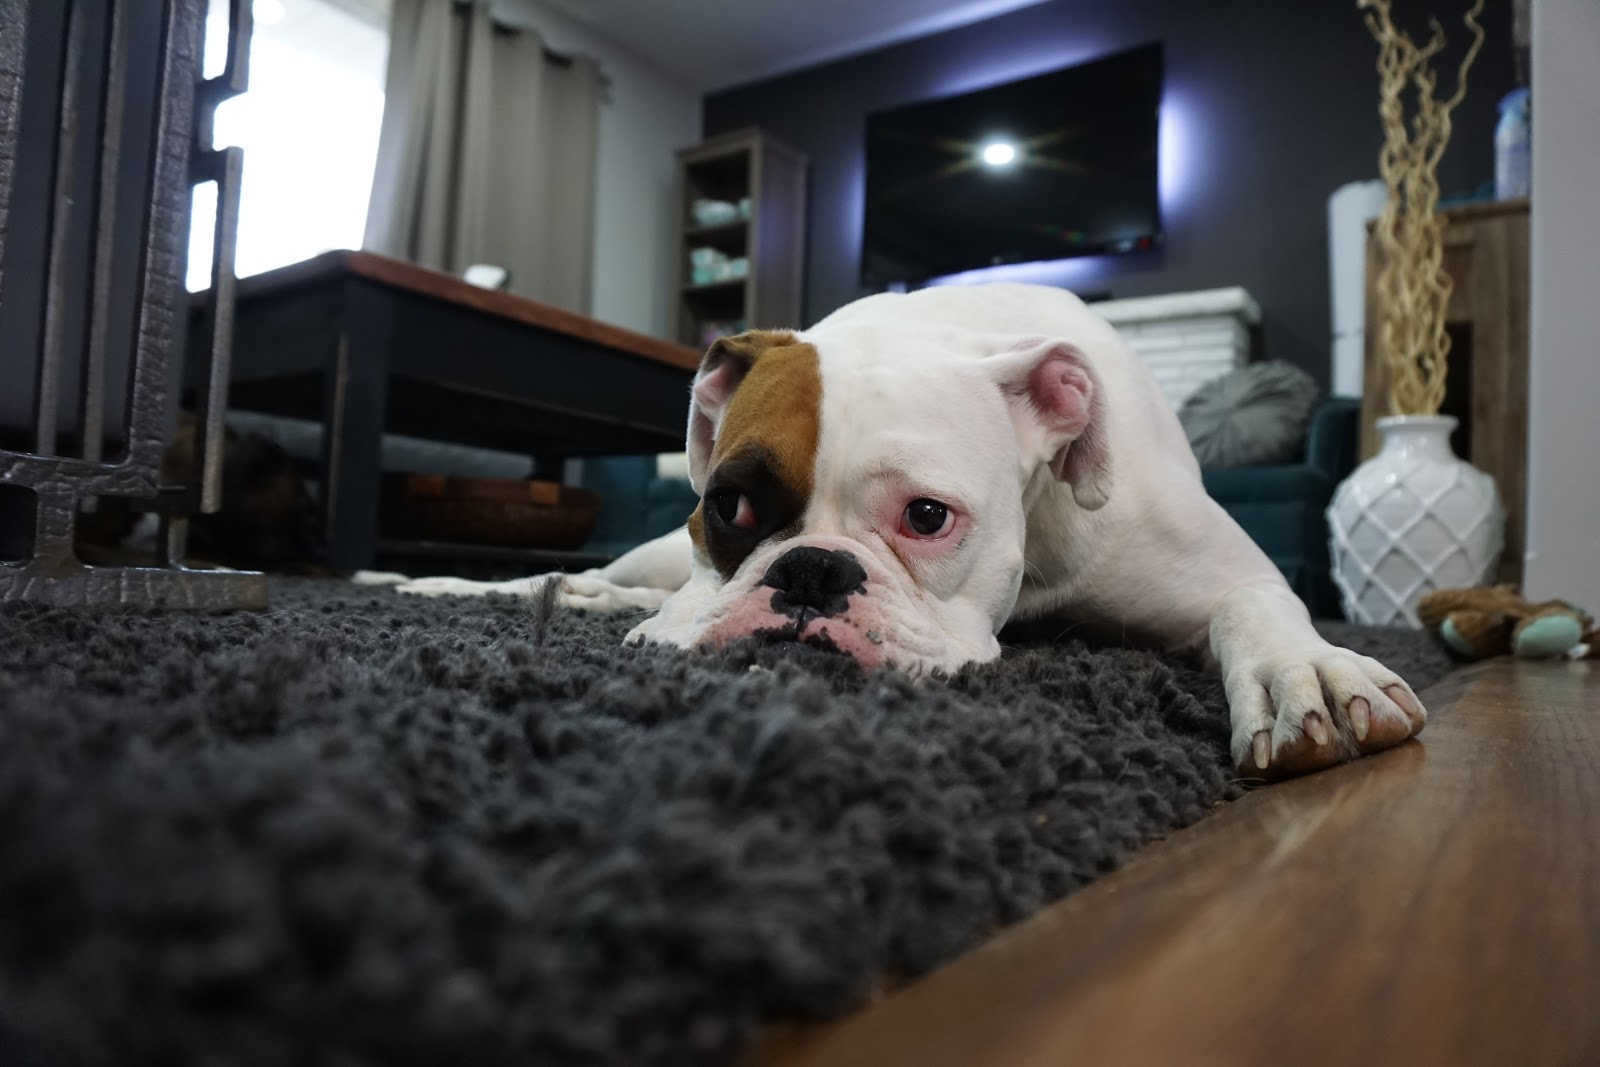 A tan and white dog lays on a carpet in an apartment.